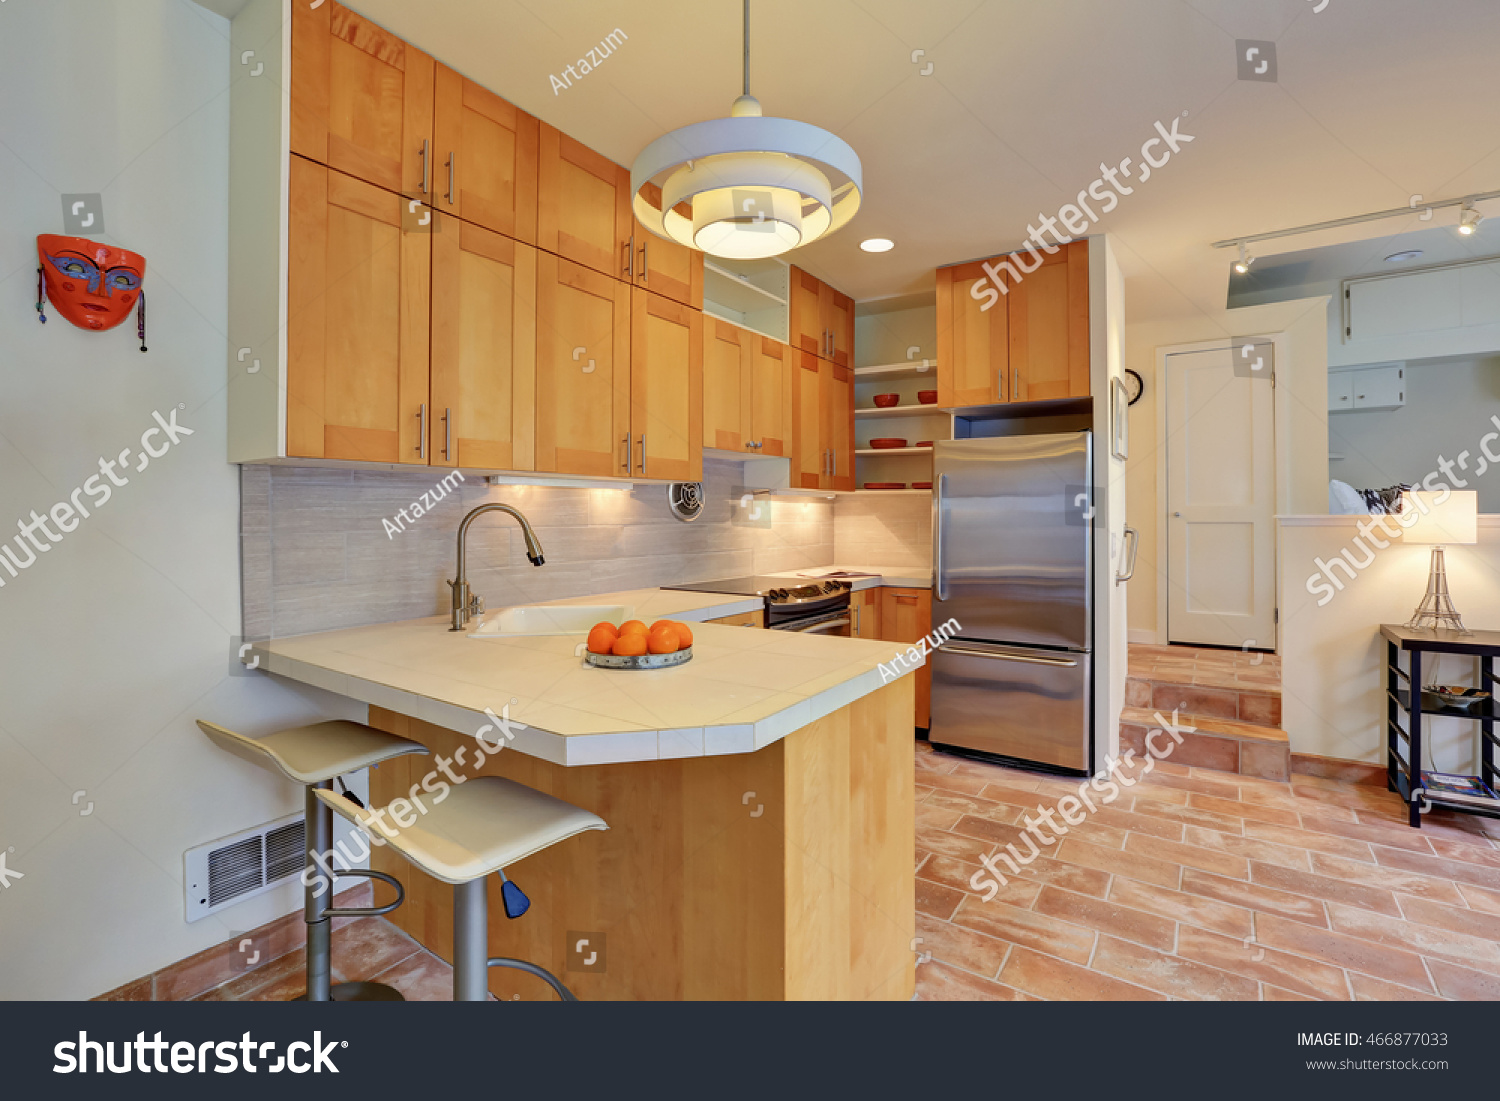 light brown kitchen interior steel appliances stock photo 466877033